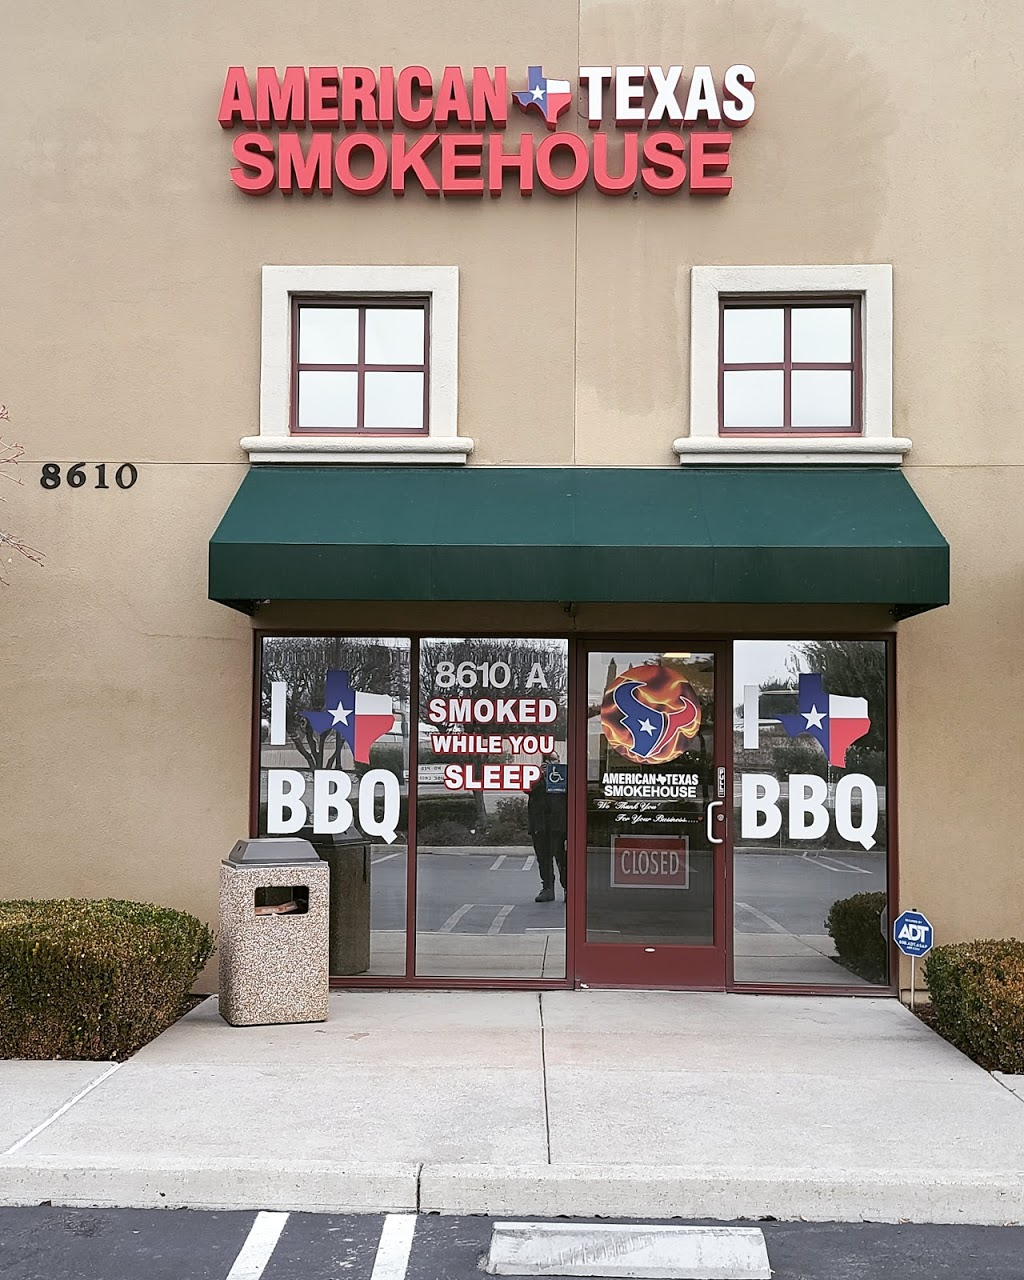 American Texas Smokehouse   restaurant   8610 Brentwood Blvd, Brentwood, CA 94513, USA   9256257665 OR +1 925-625-7665